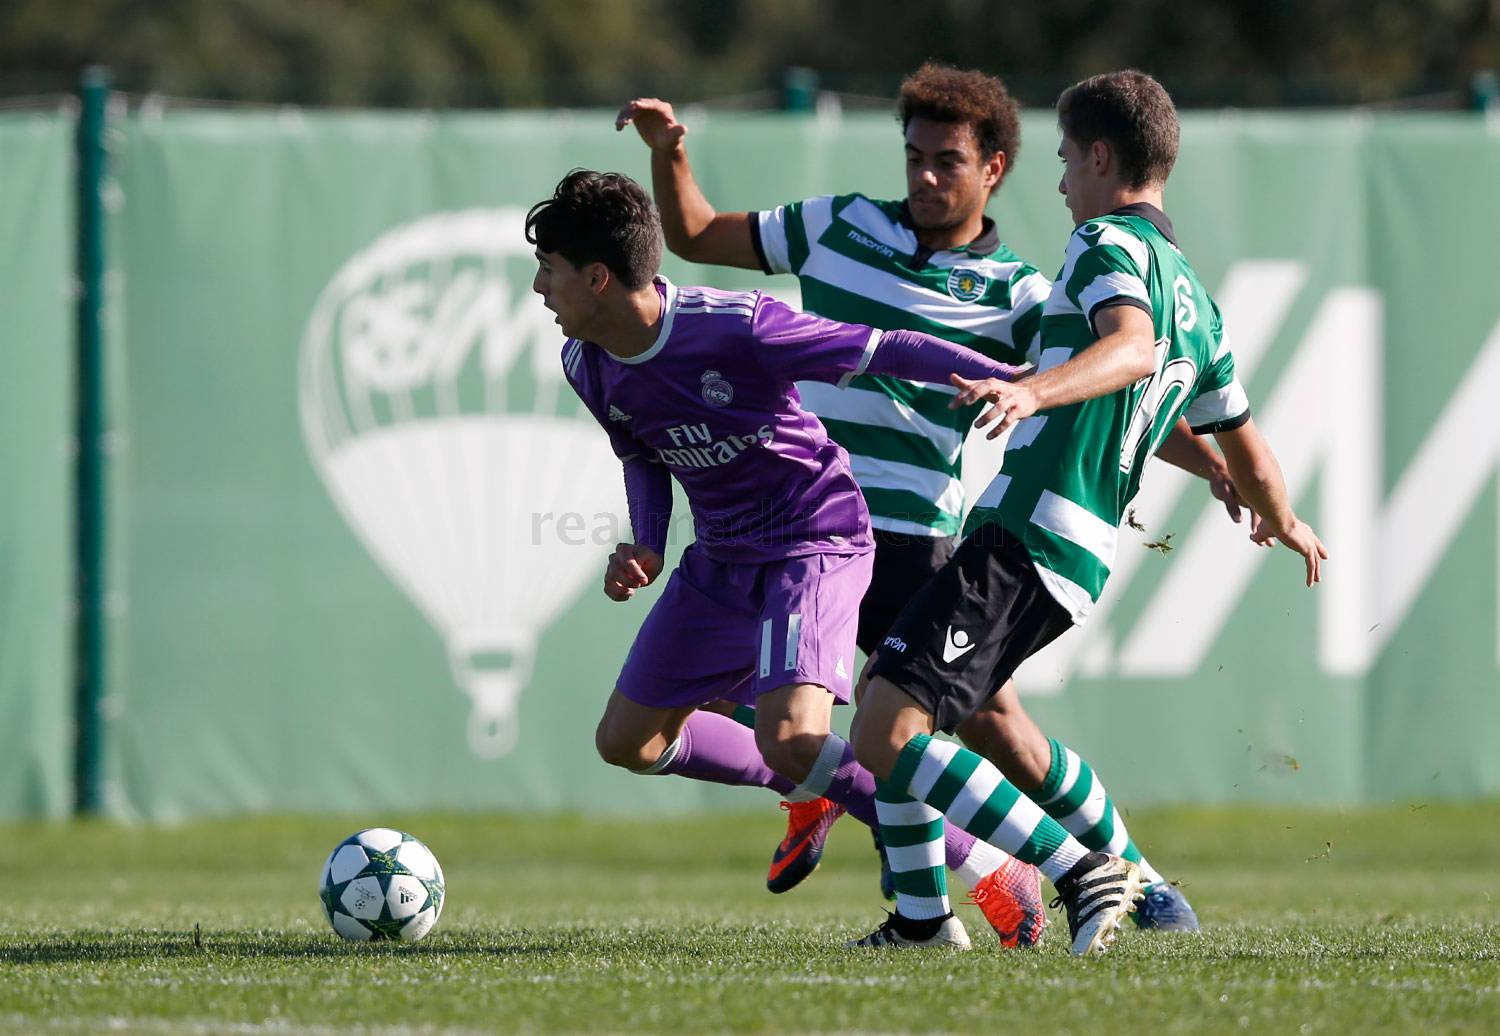 Real Madrid - Sporting Portugal - Juvenil A - 22-11-2016